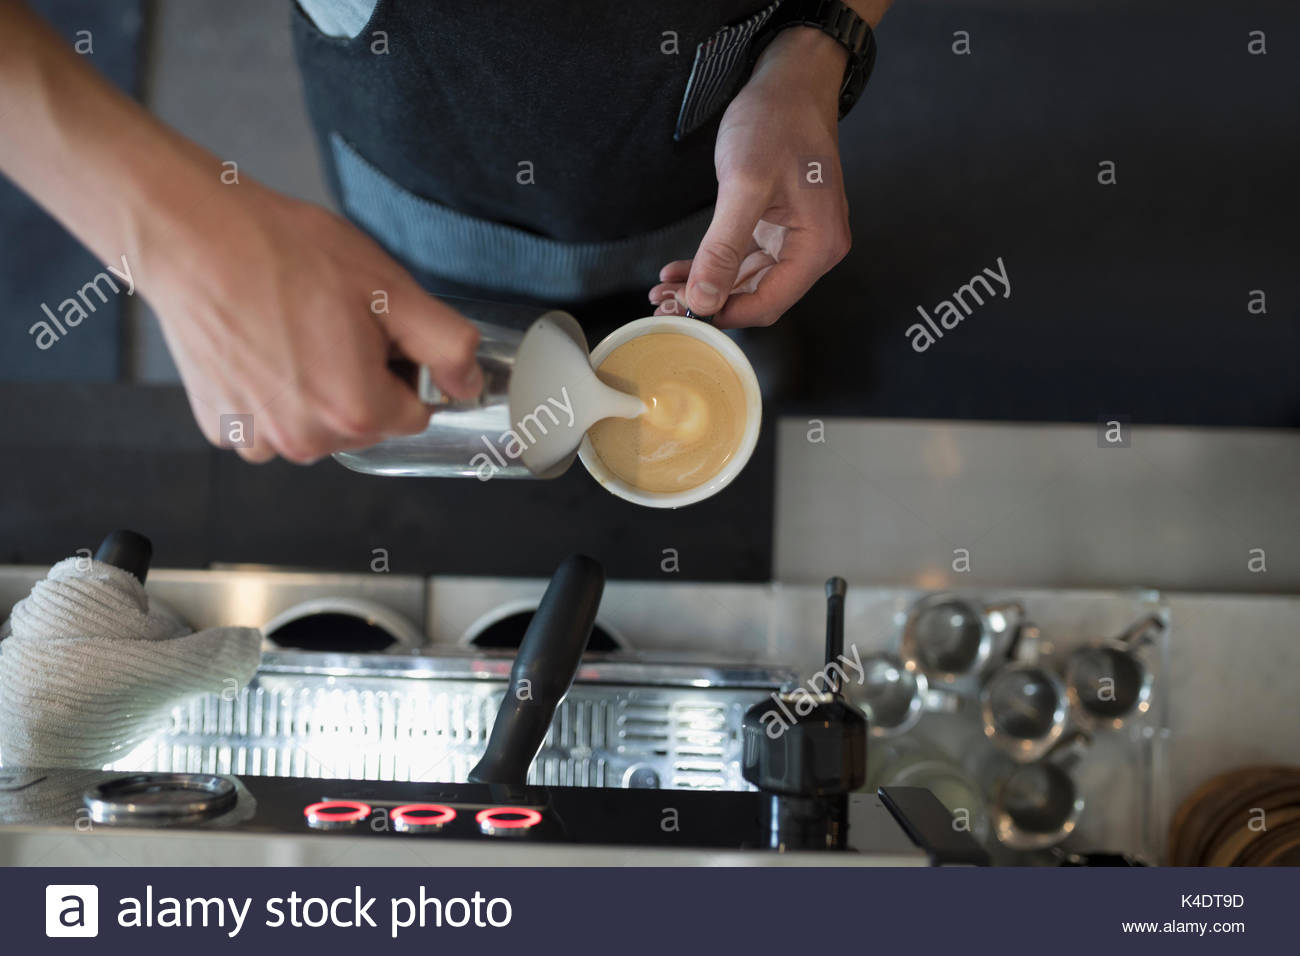 Overhead view male barista pouring milk foam into cappuccino in cafe - Stock Image